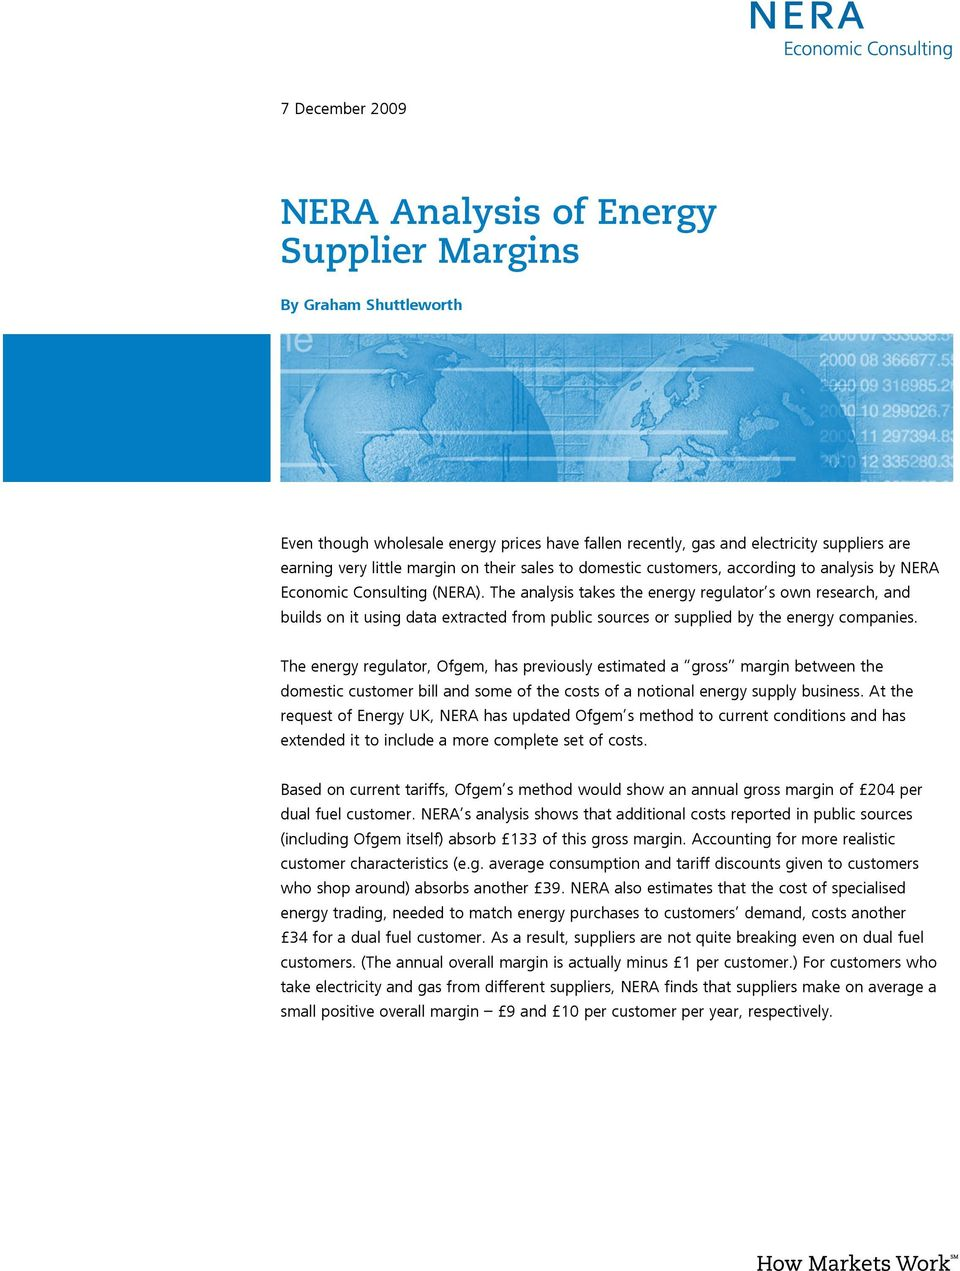 The analysis takes the energy regulator s own research, and builds on it using data extracted from public sources or supplied by the energy companies.